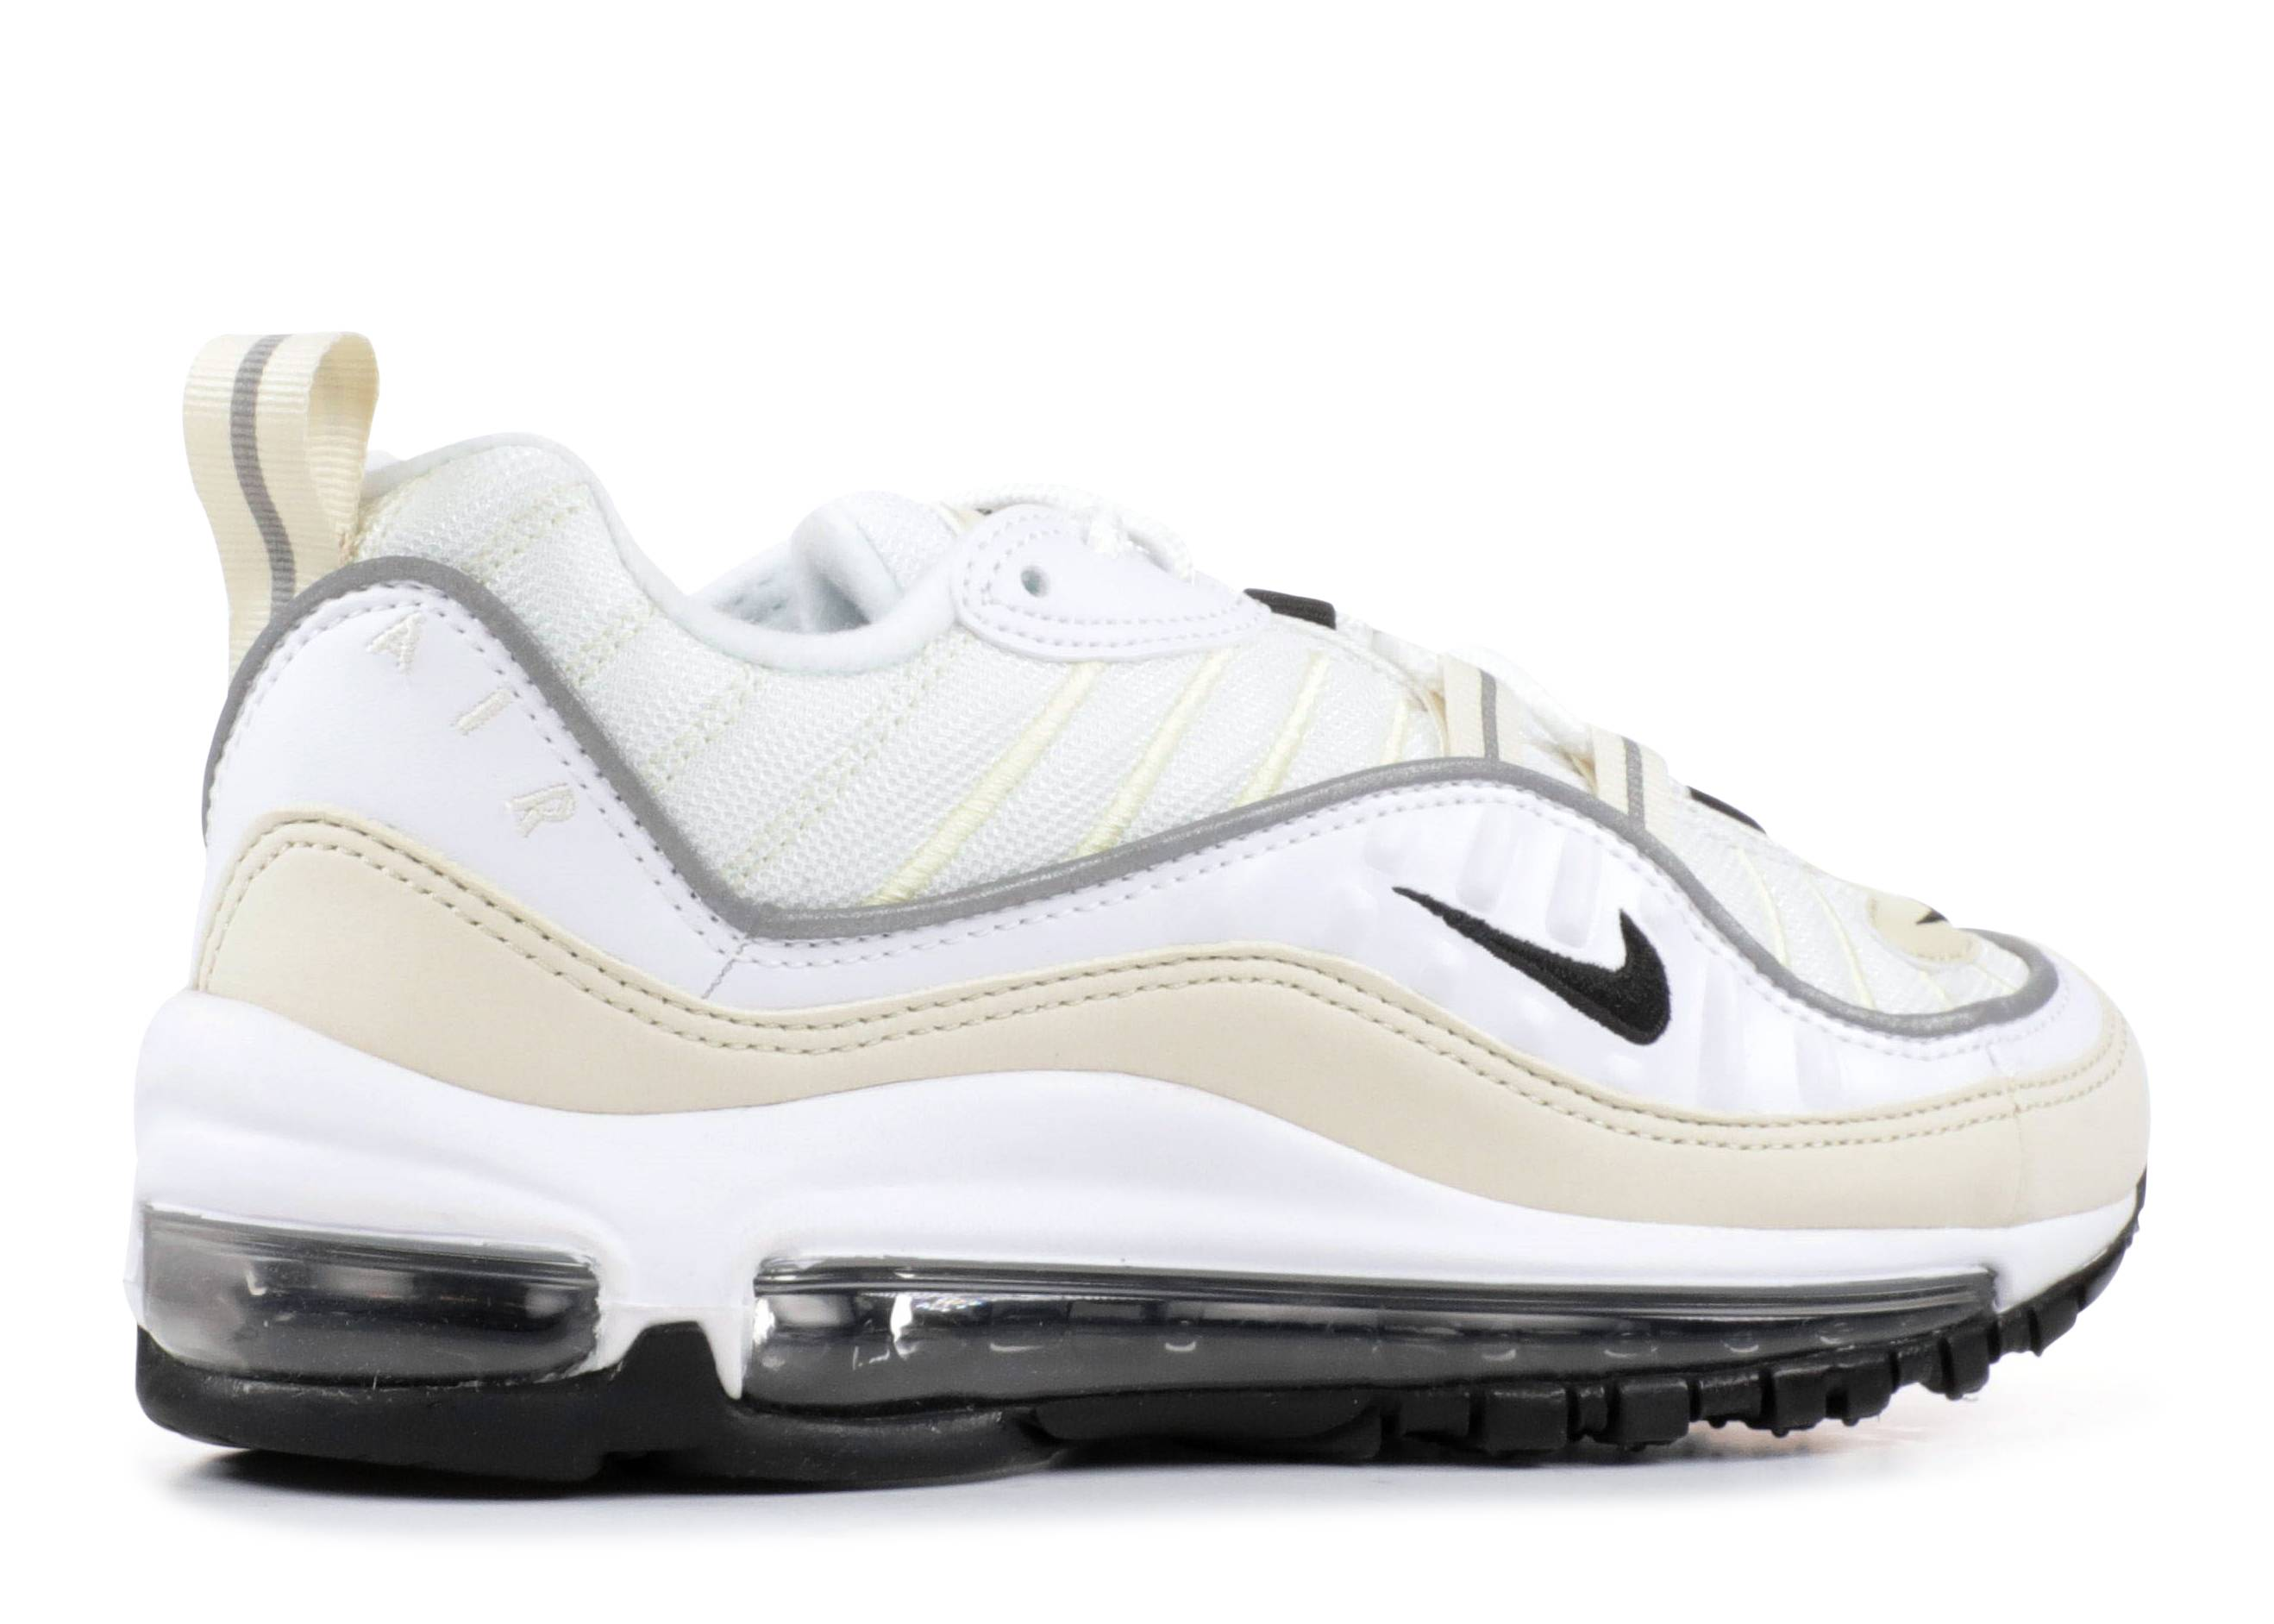 Nike Womens Air Max 98 White Fossil Reflect Silver Black Ah6799 102 Size 10.5